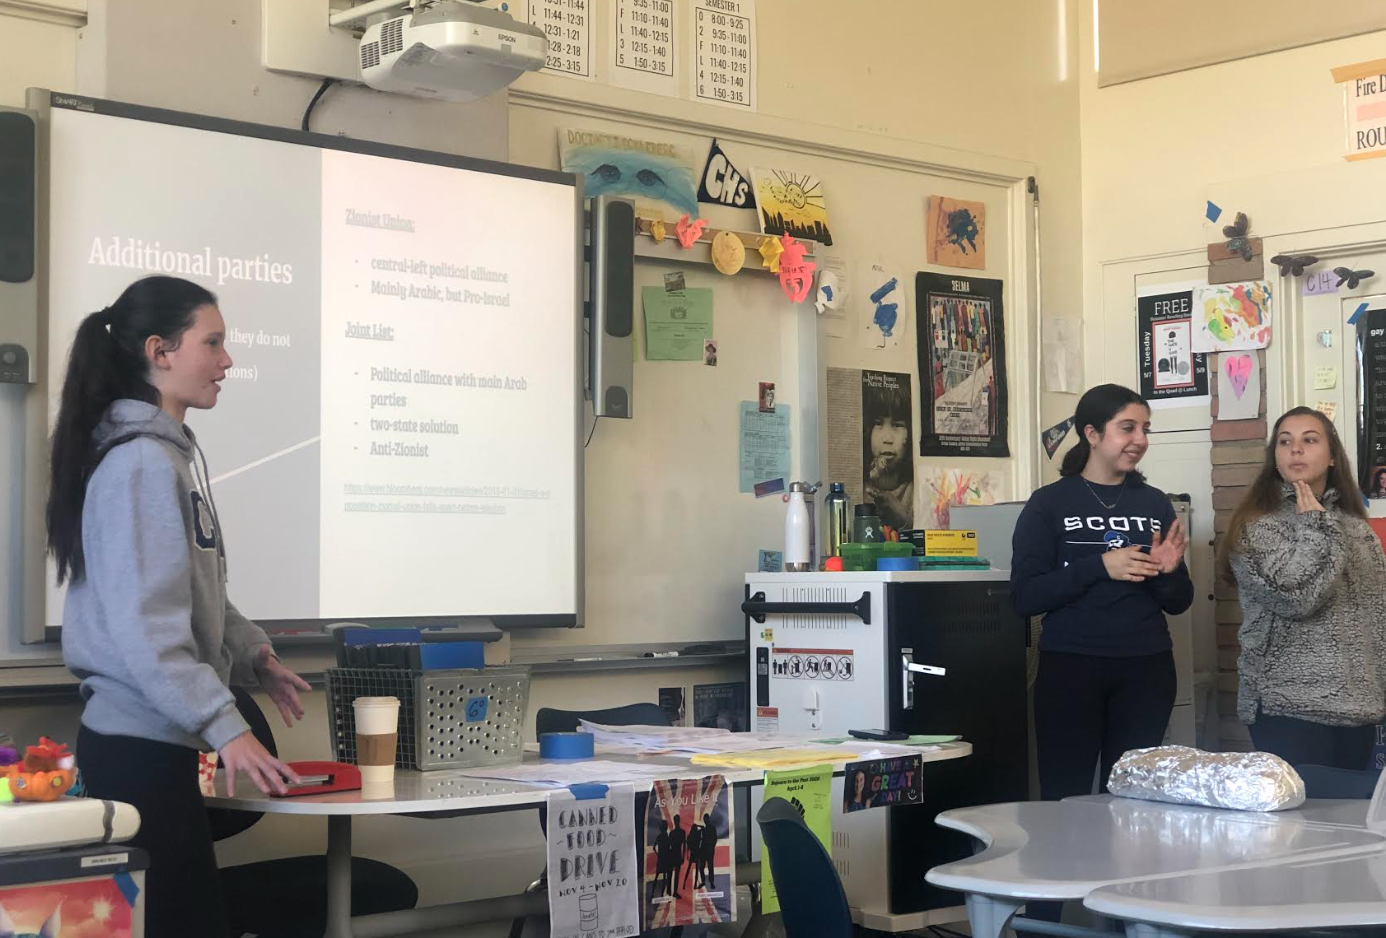 Members of the Jewish Club share a presentation concerning the election in Israel.